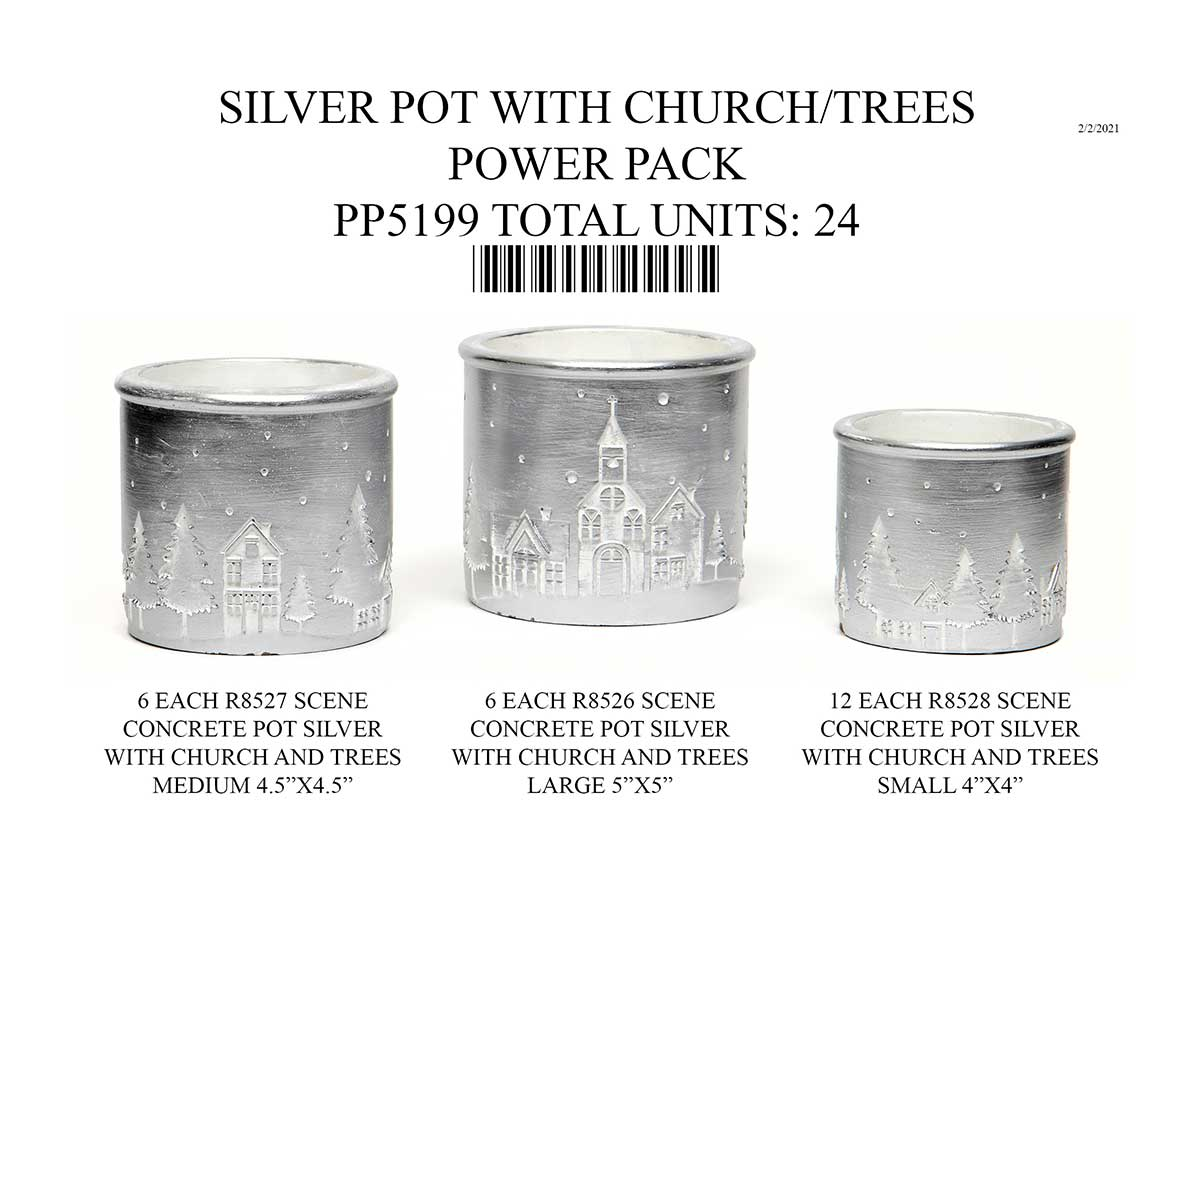 SILVER CONCRETE POT WITH TREE/CHURCH SCENE 24 UNITS PP5199